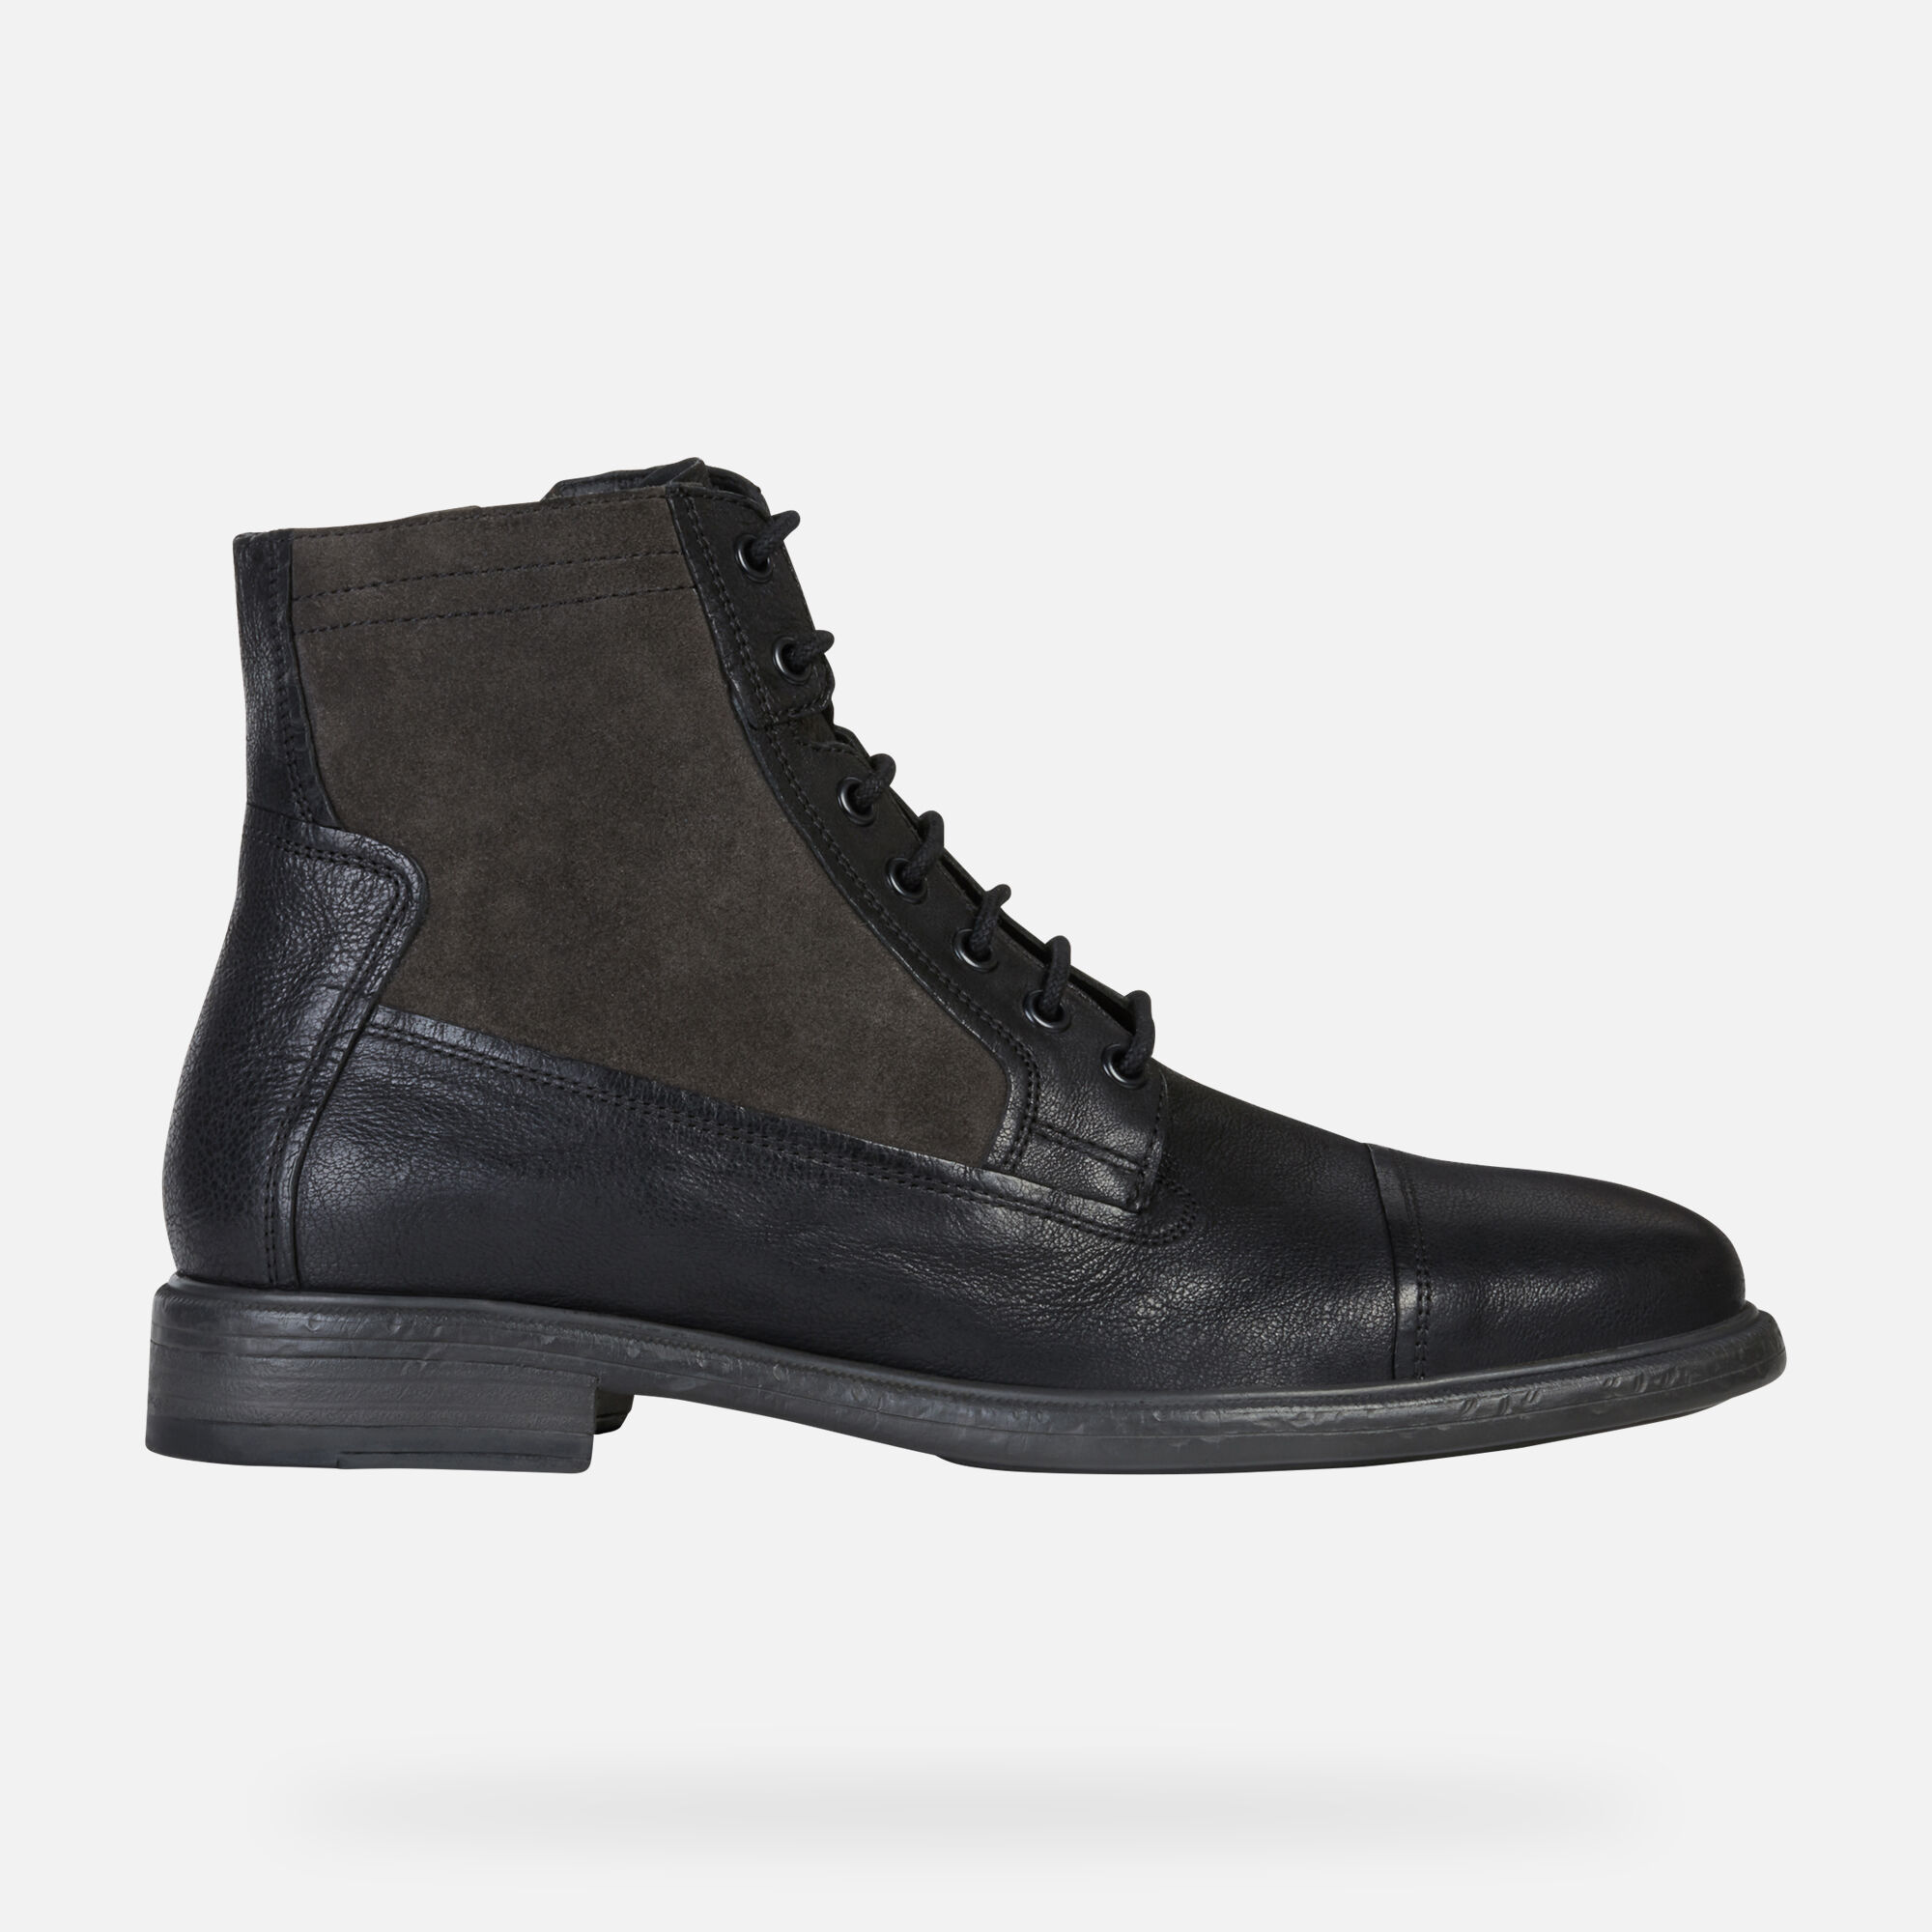 Geox TERENCE Man: Black Ankle Boots   Geox ® FW 1920